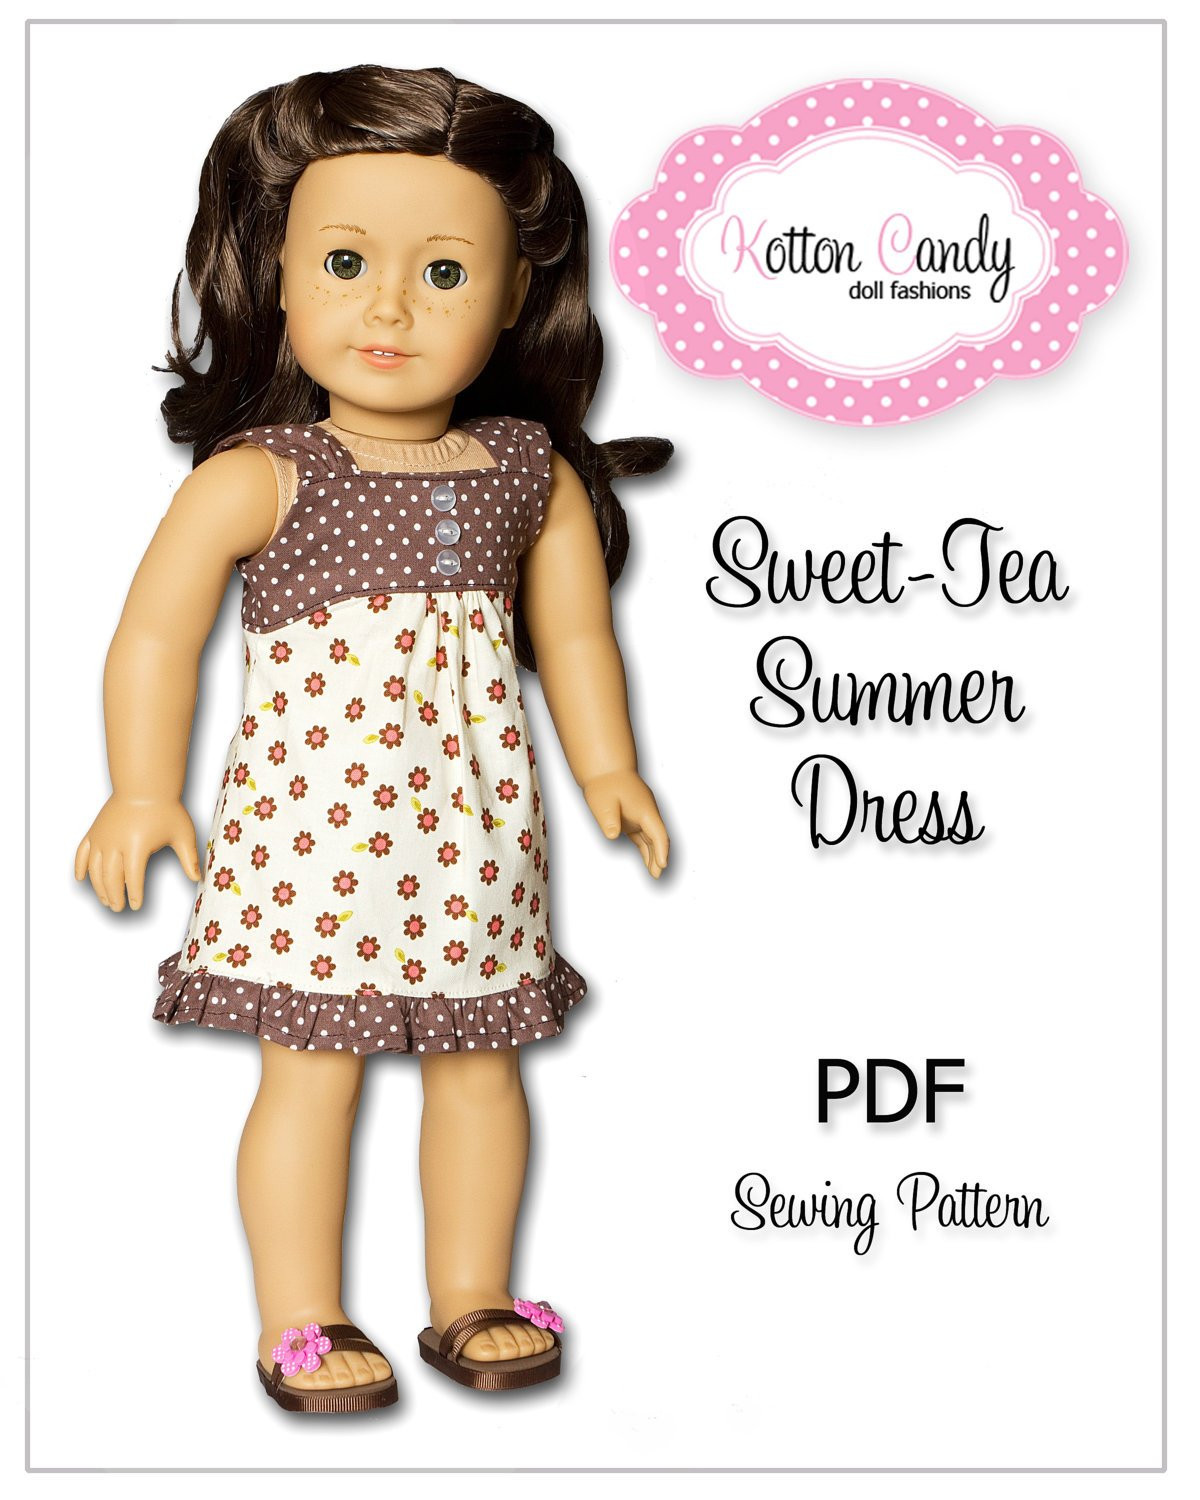 Unique Pdf Sewing Pattern for 18 Inch American Girl Doll Clothes American Girl Doll Dress Patterns Of Incredible 48 Models American Girl Doll Dress Patterns